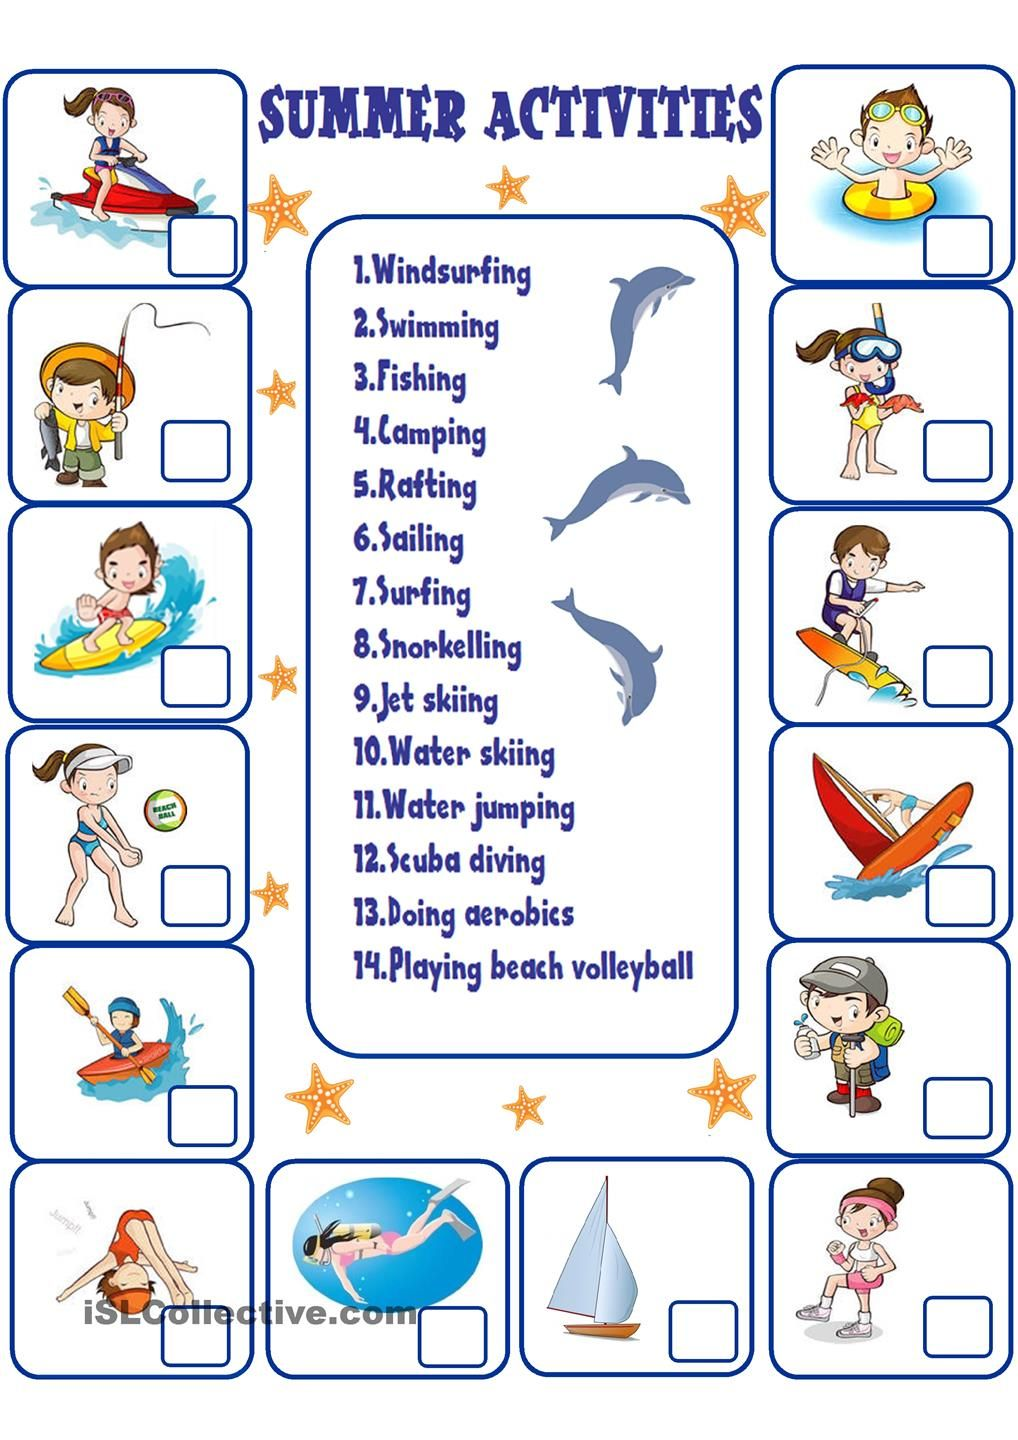 Fun Class Worksheets : Summer activities free esl worksheets verano